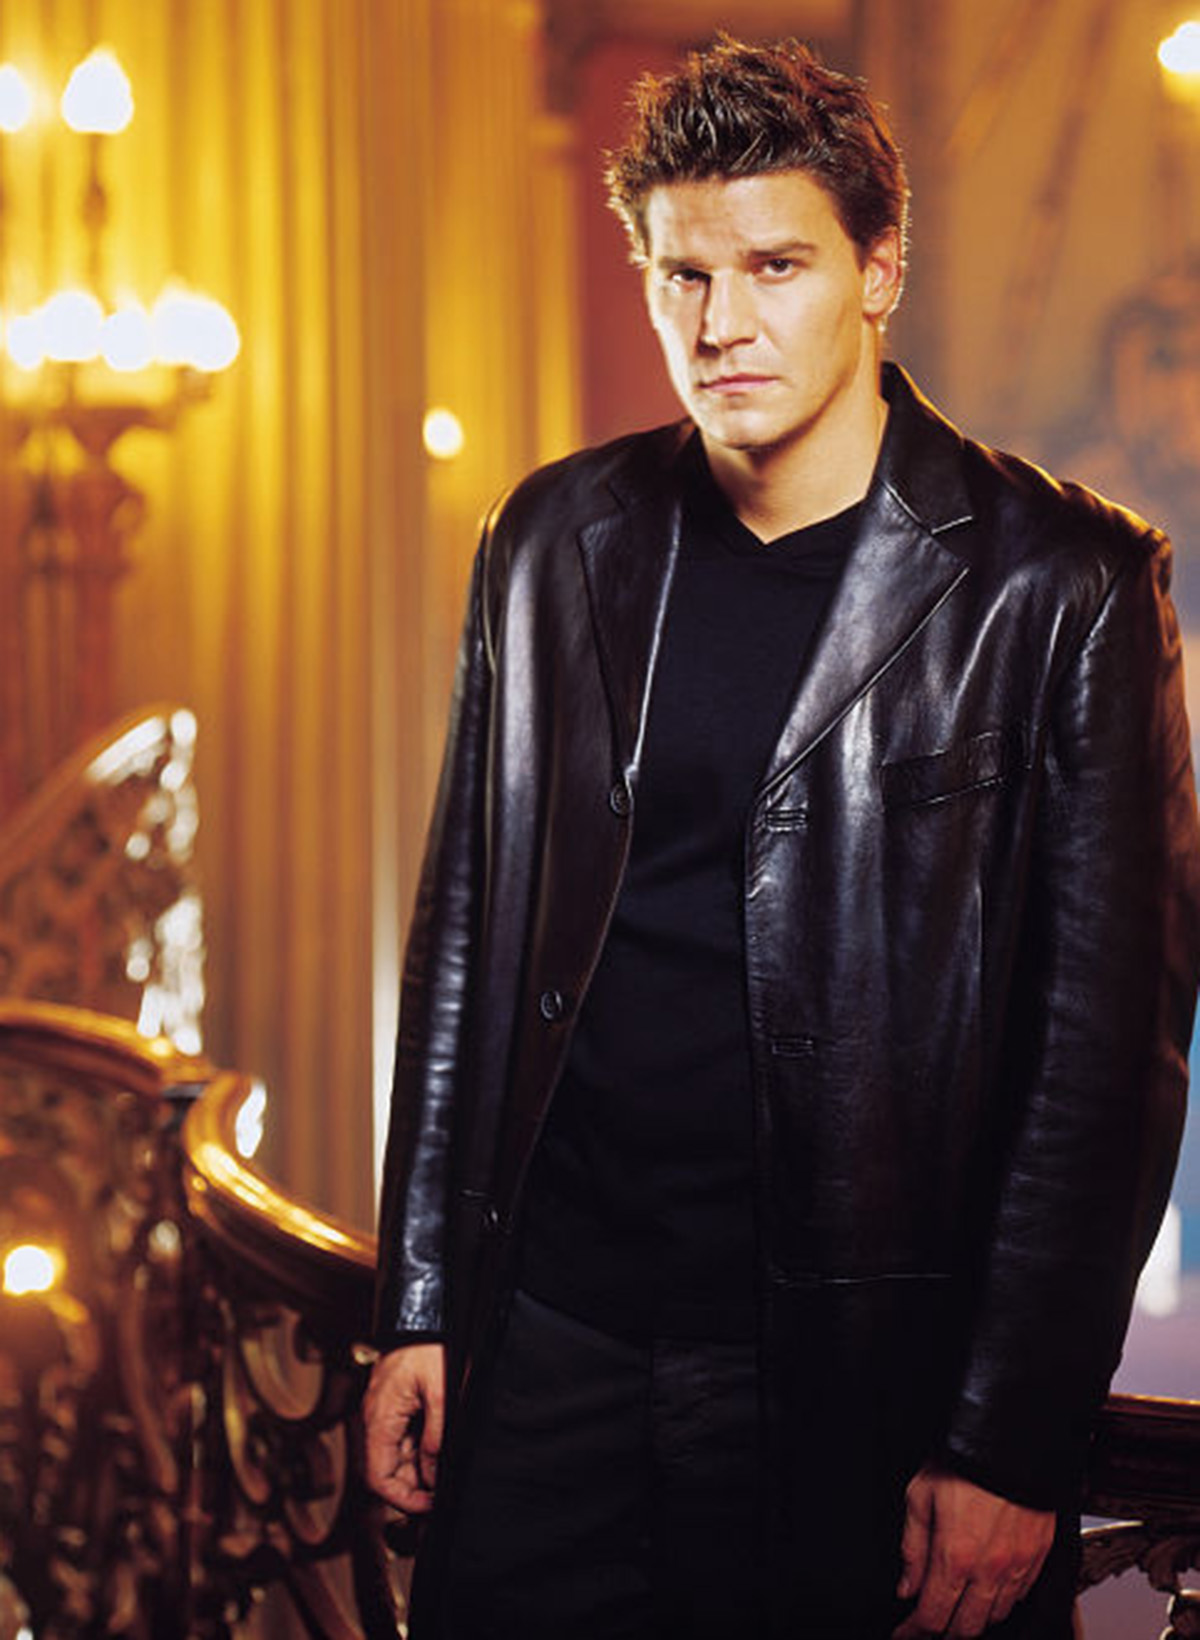 david boreanaz angel season 1 - photo #20